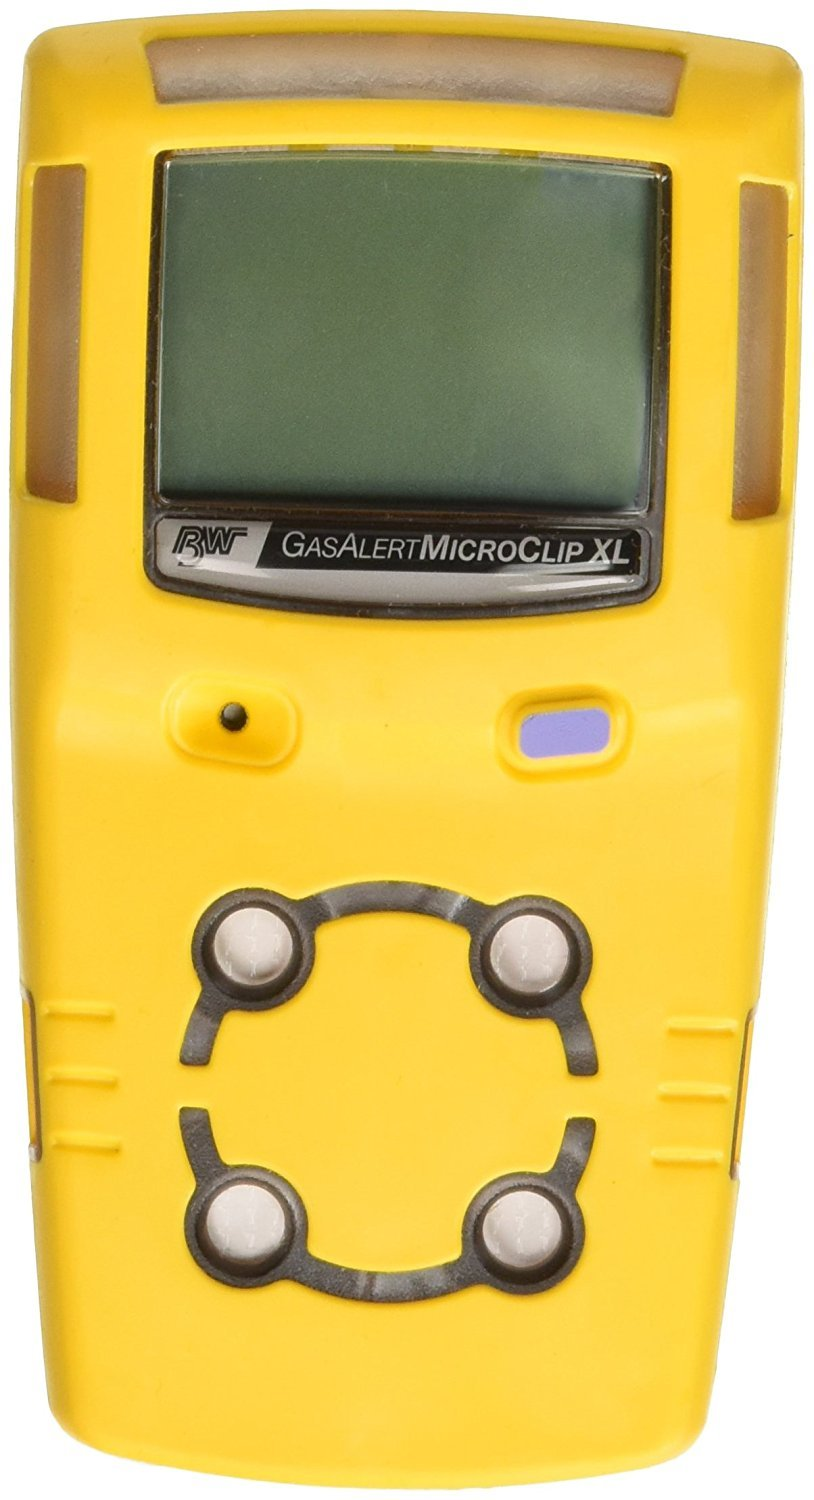 BW Technologies MCXL-XWHM-Y-NA GasAlertMicroClip XL 4 Gas Detector, CO, H2S, LEL and O2, Yellow: Amazon.com: Industrial & Scientific